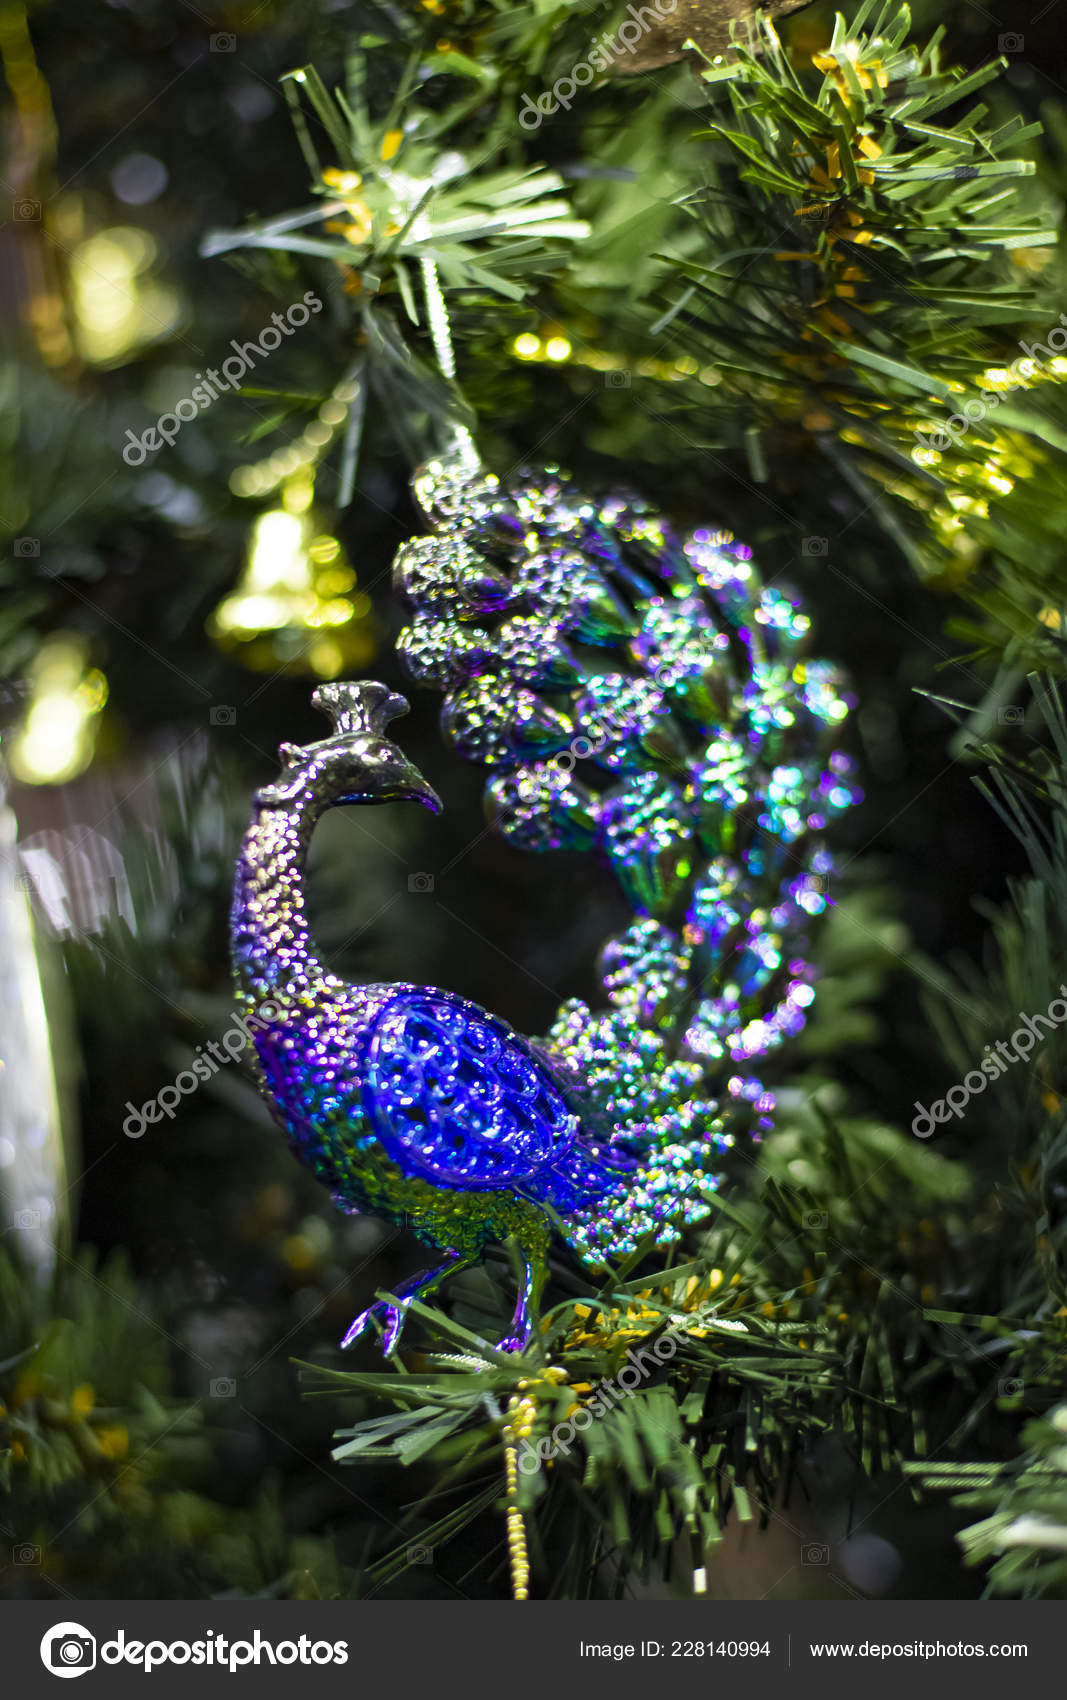 Vintage Christmas Tree Toy Decorations Purple Peacock Stock Photo Image By C Taborov 228140994